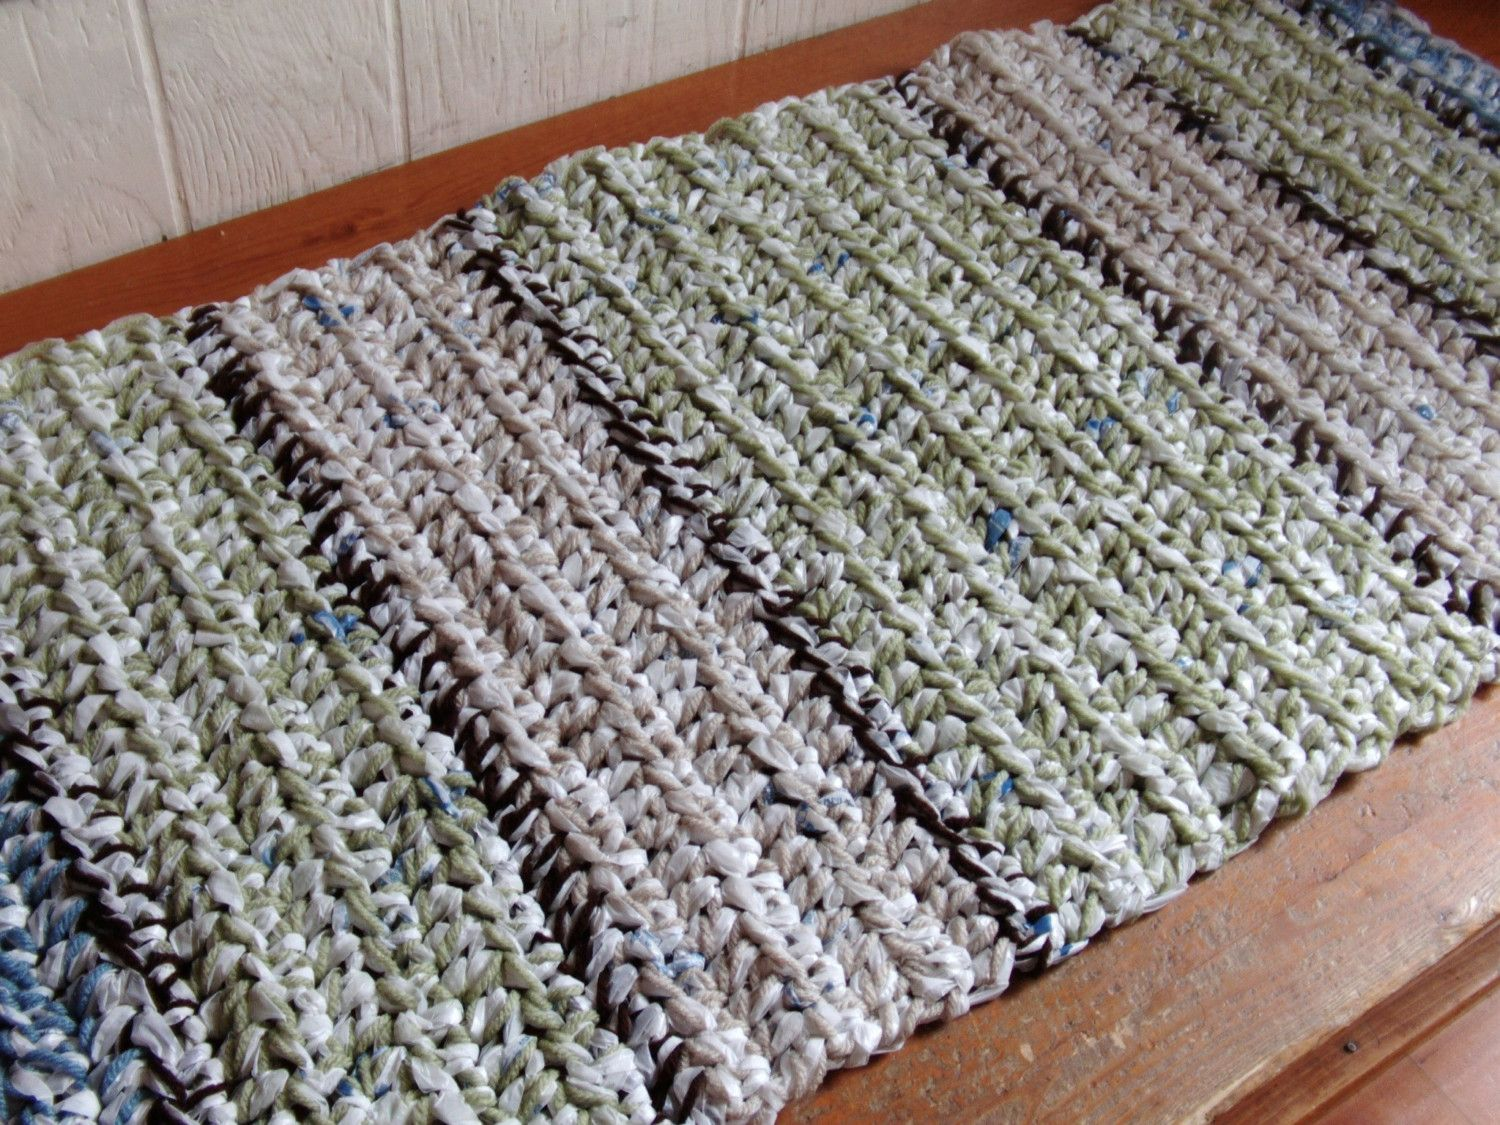 Knit Or Braid The Plarn Into A Floor Mat €� The Perfect Surface For Wiping  The